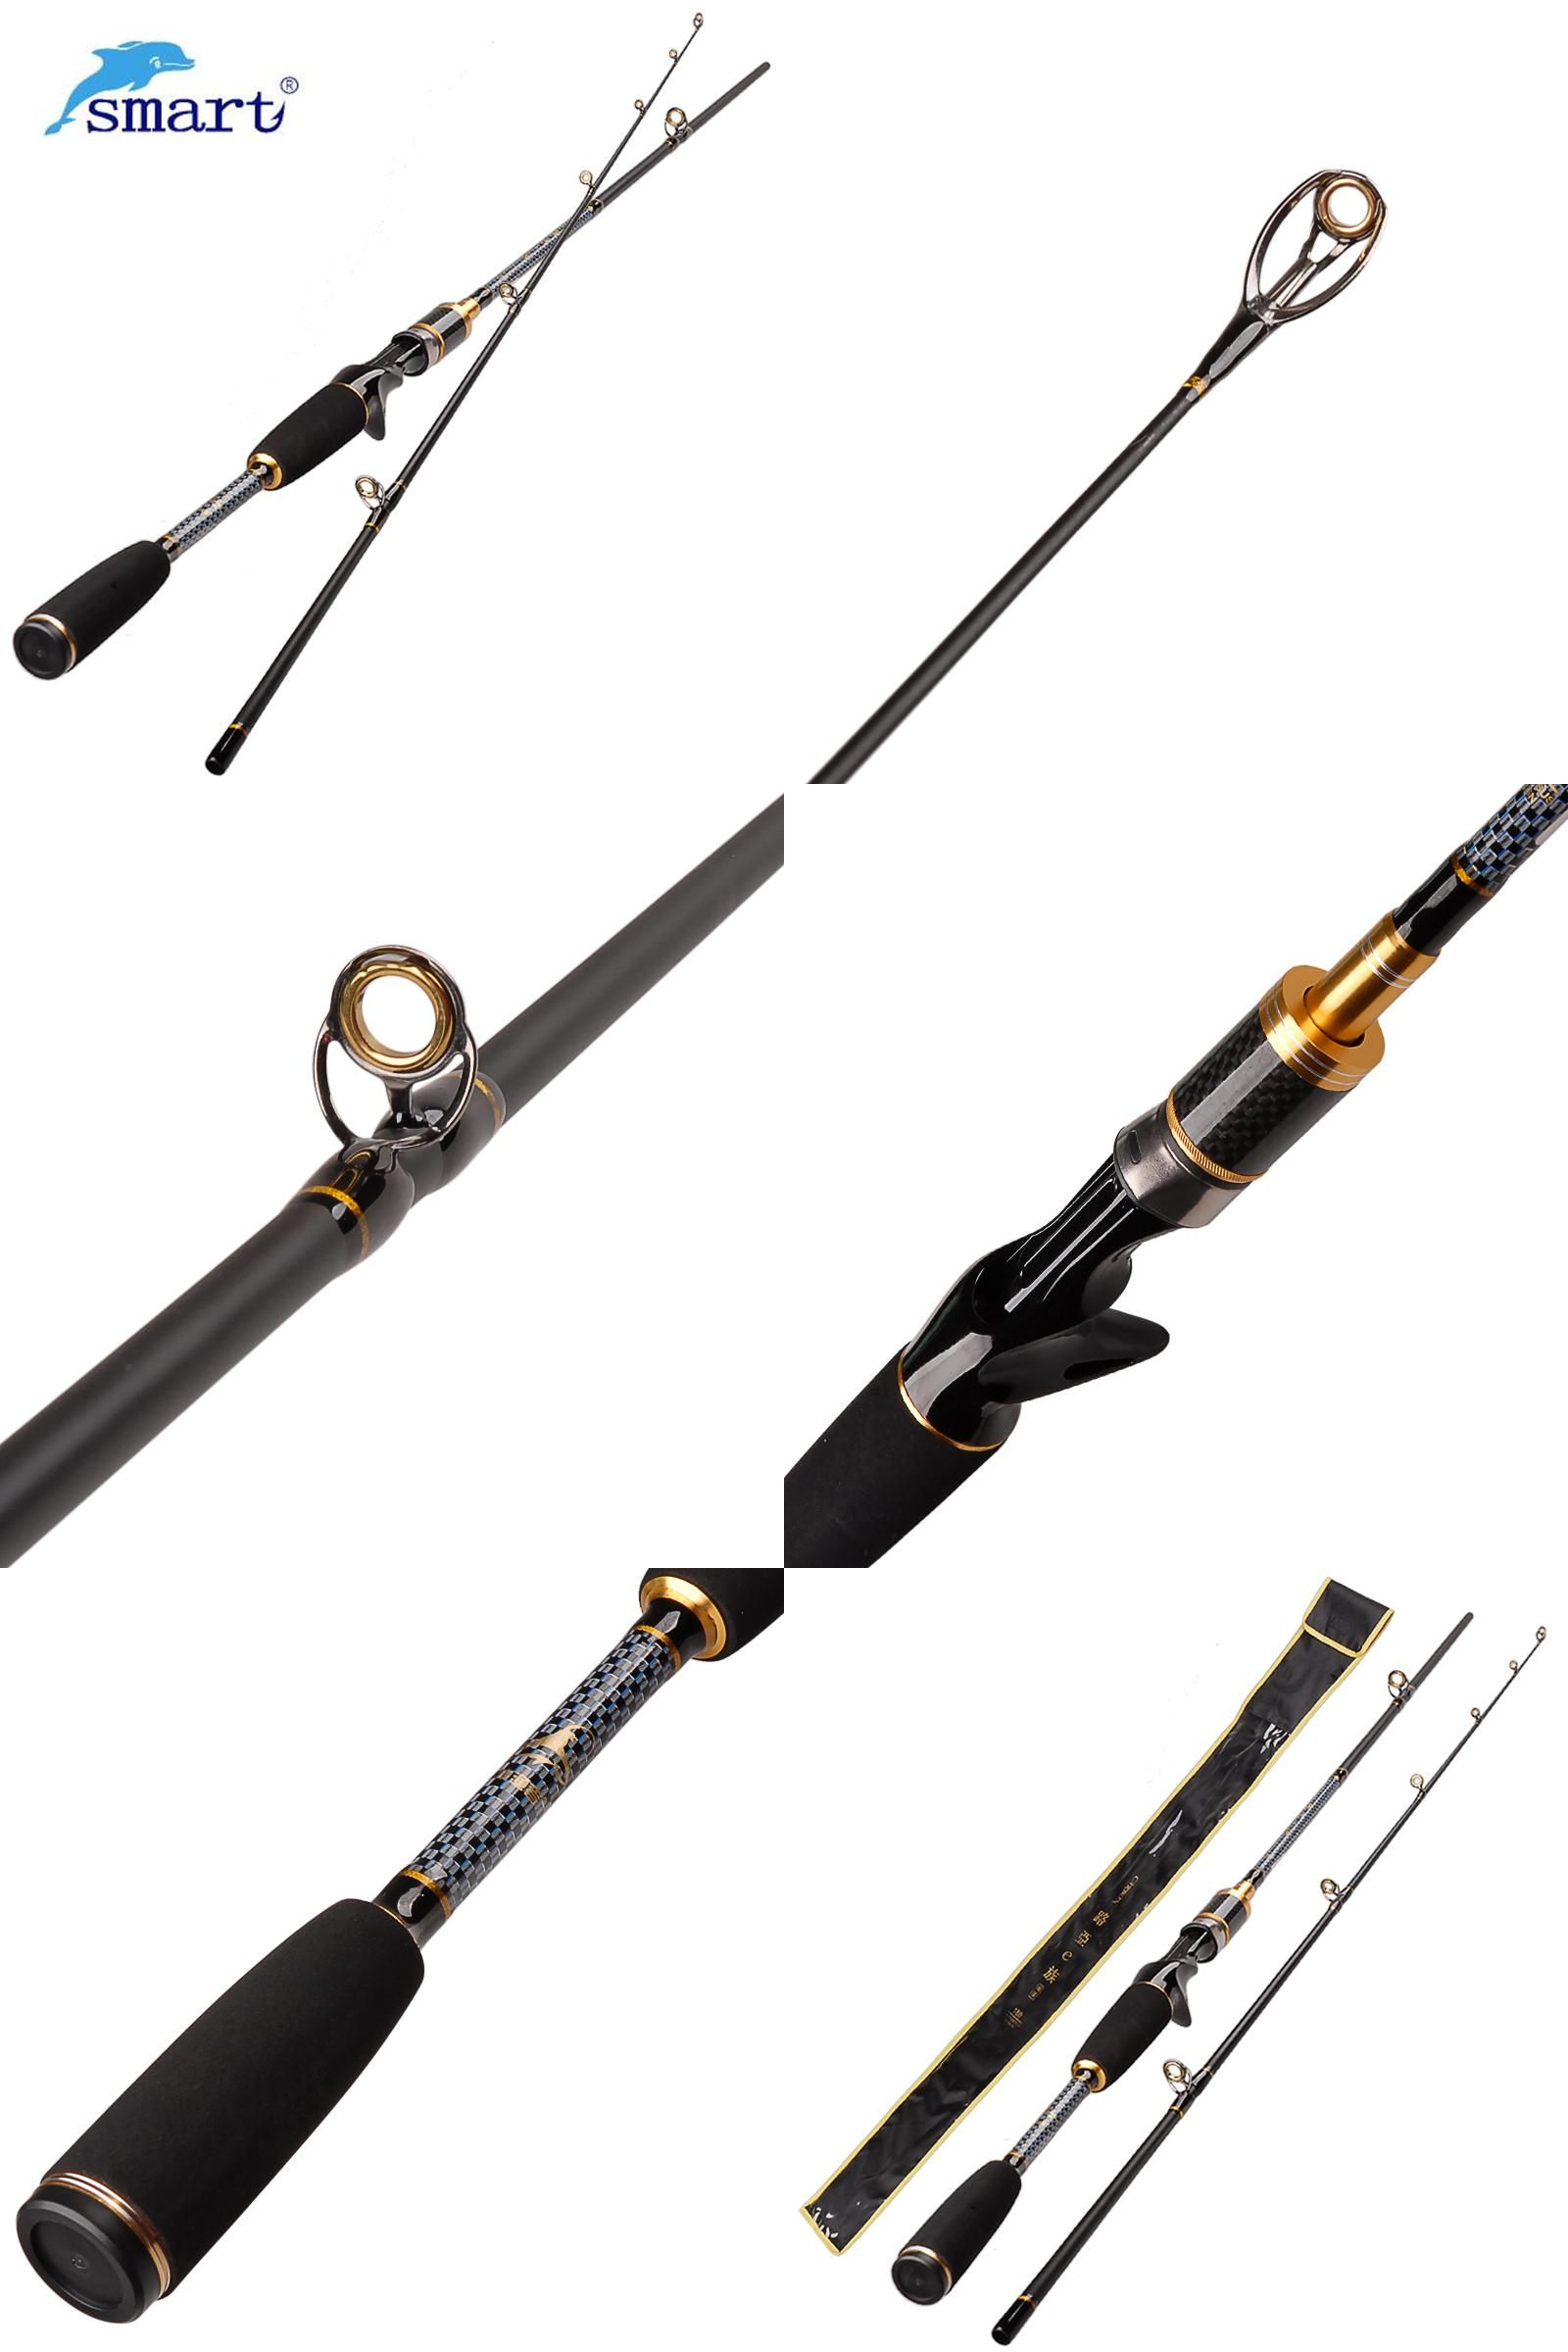 Visit to Buy] SMART 1 8m 2Section Baitcasting Fishing Rod Power M